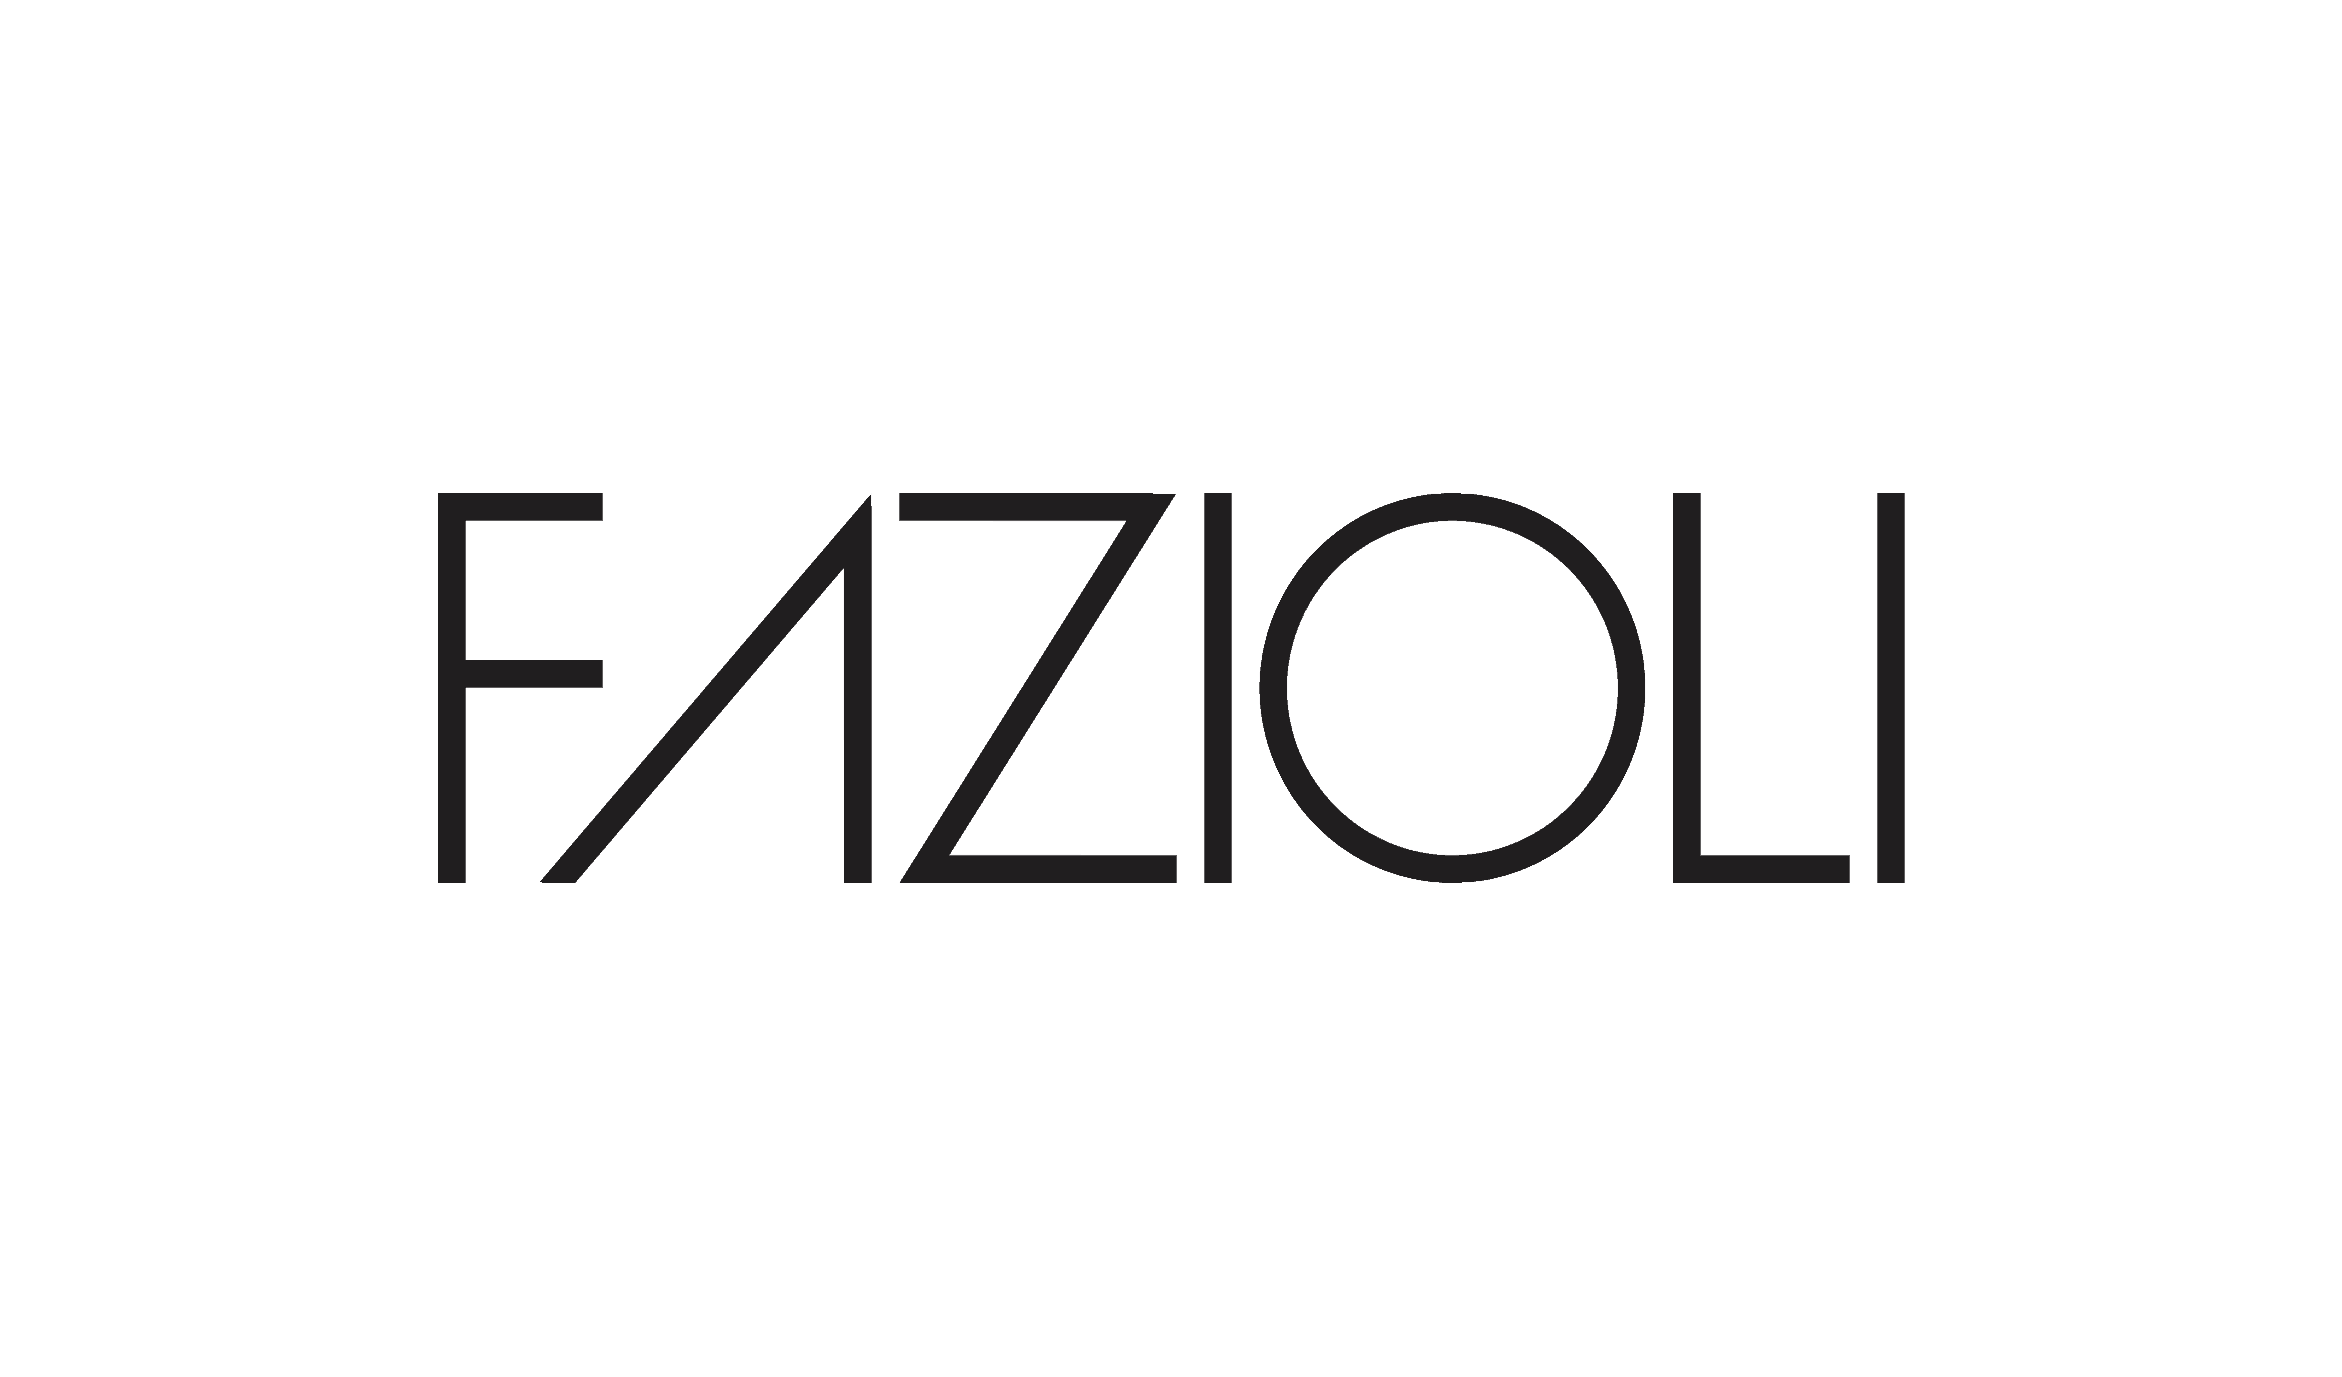 FAZIOLI logotipo dragged copy